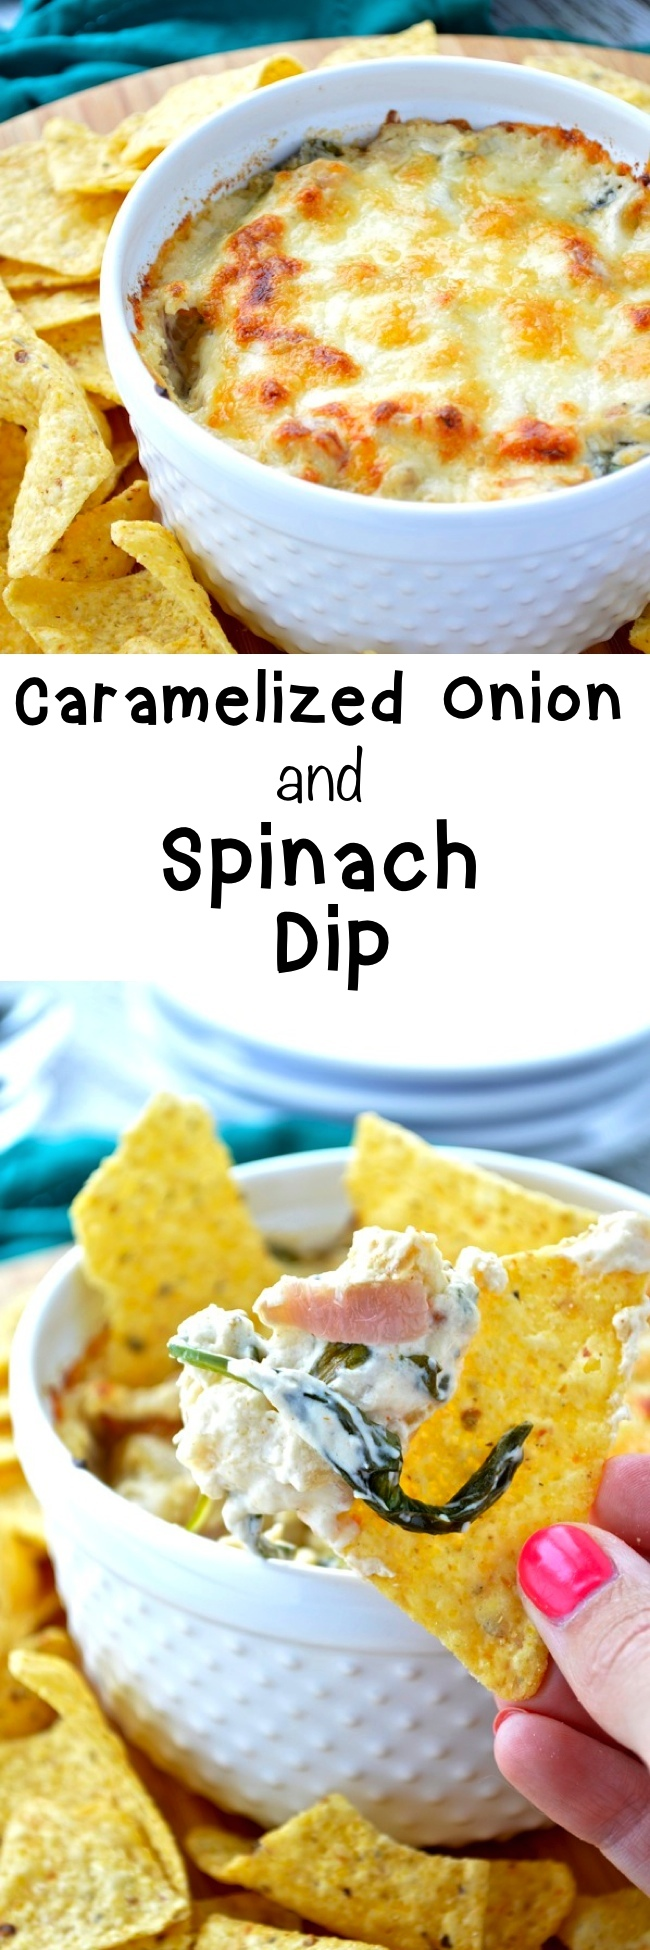 Caramelized Onion and Spinach Dip Pin